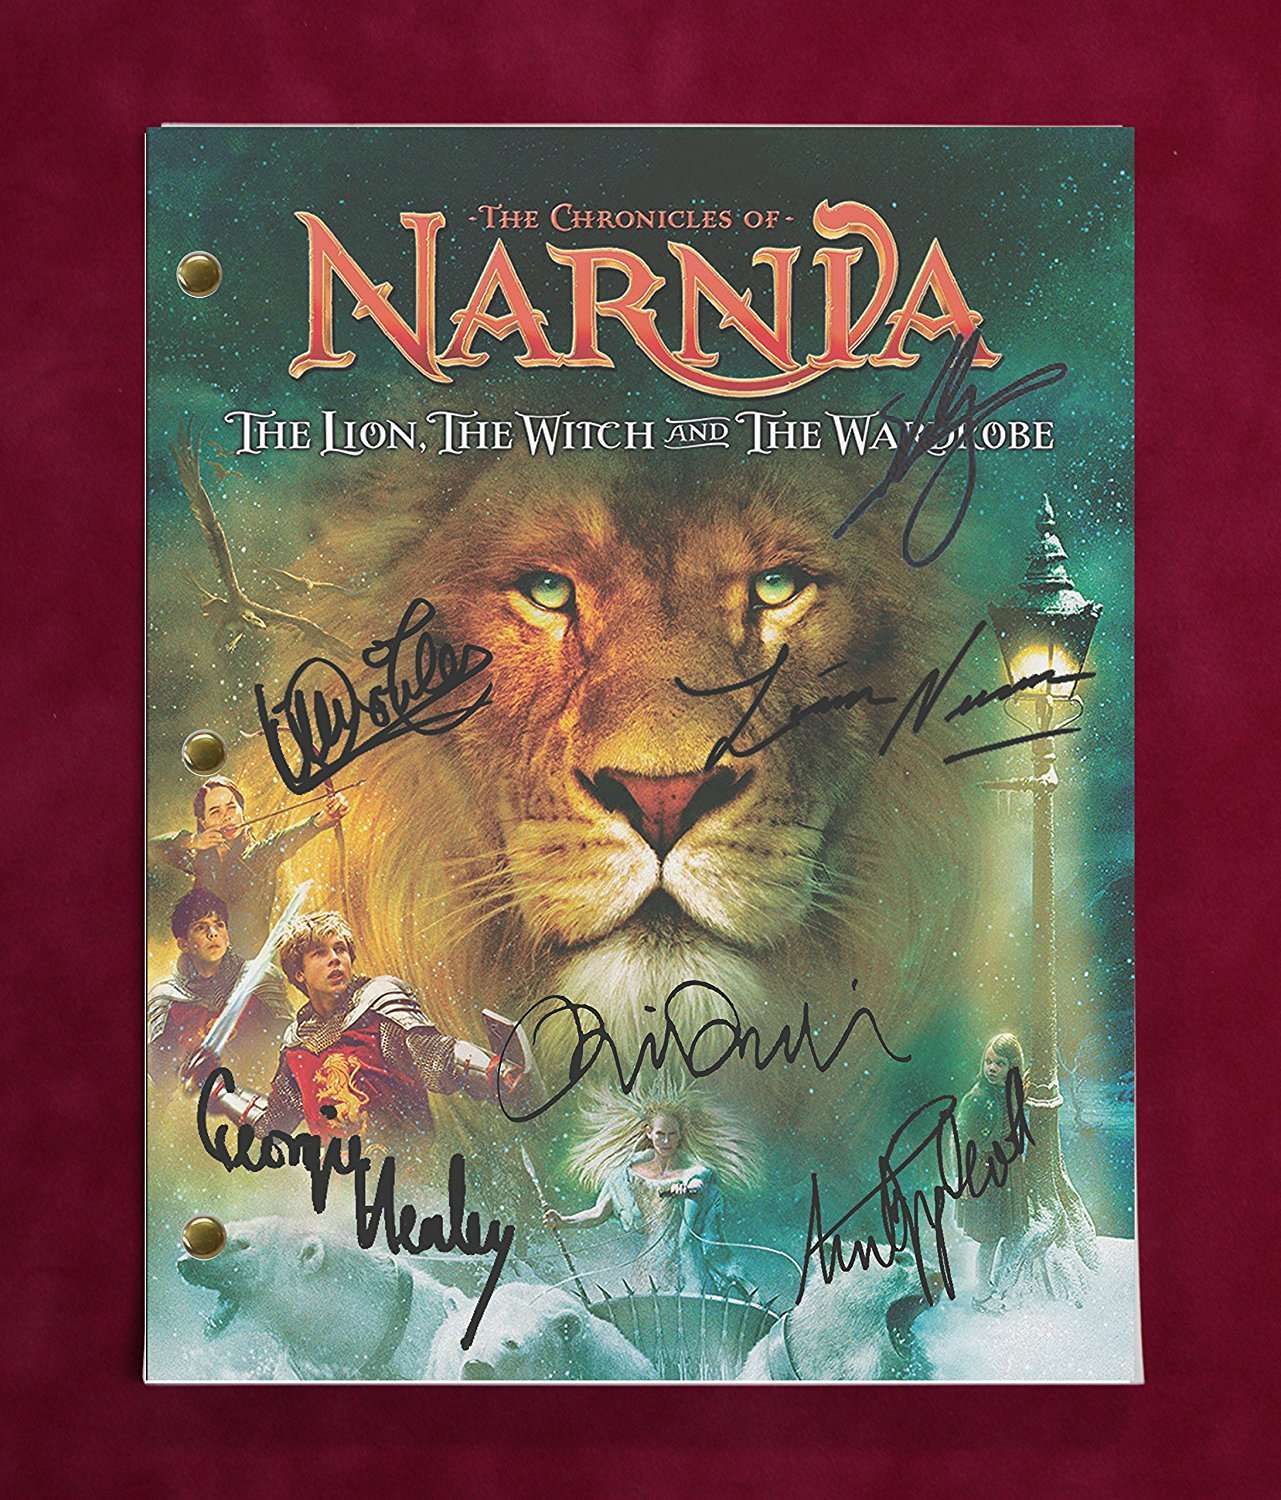 Original Lion Witch And The Wardrobe Movie: Chronicles Of Narnia The Lion The Witch And The Wardrobe